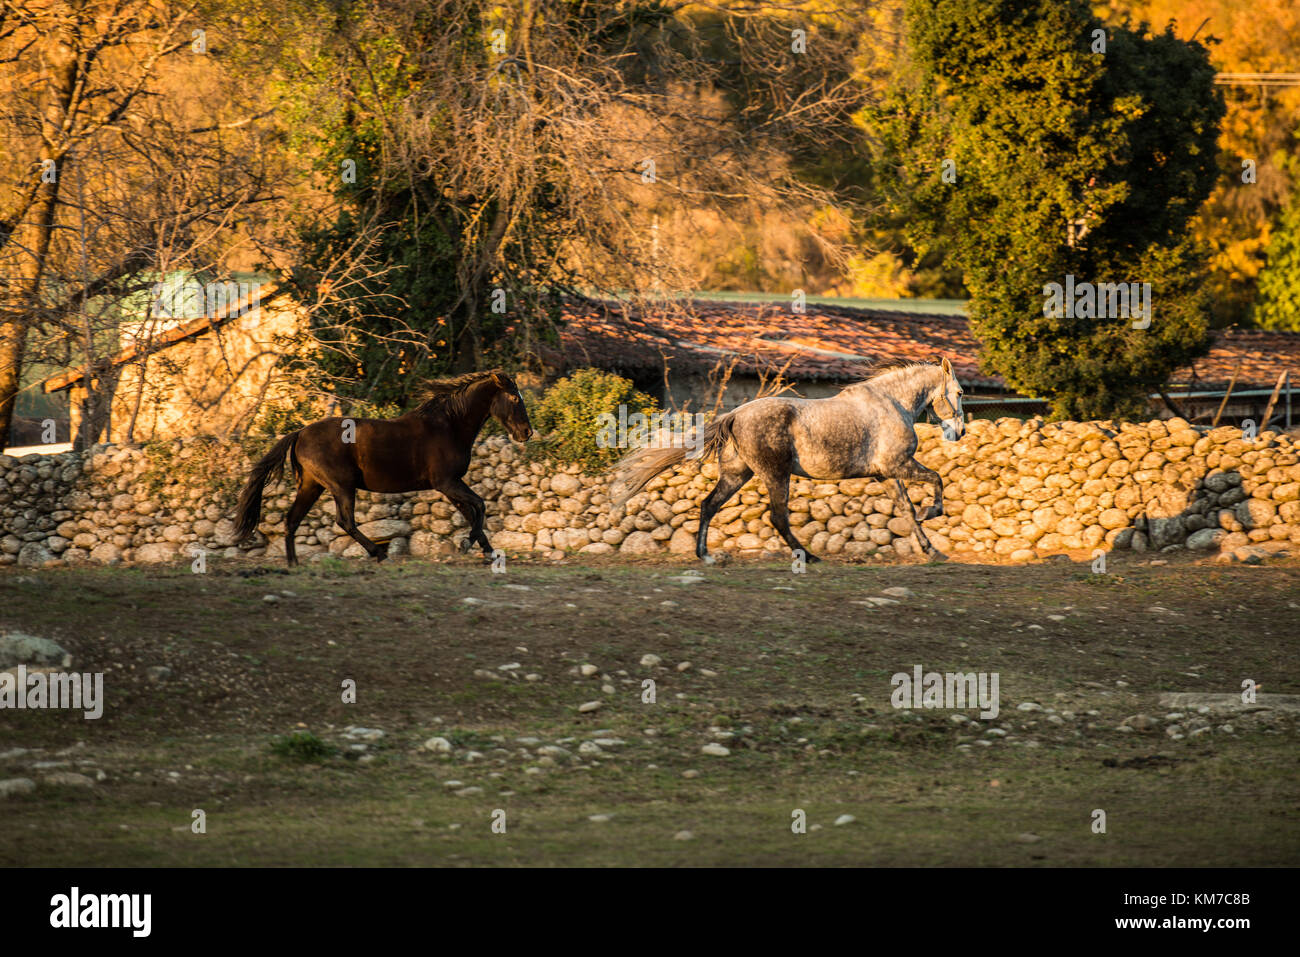 Two horses, one white and one black, run free on a ranch in Jerte, Extremadura, Spain. - Stock Image